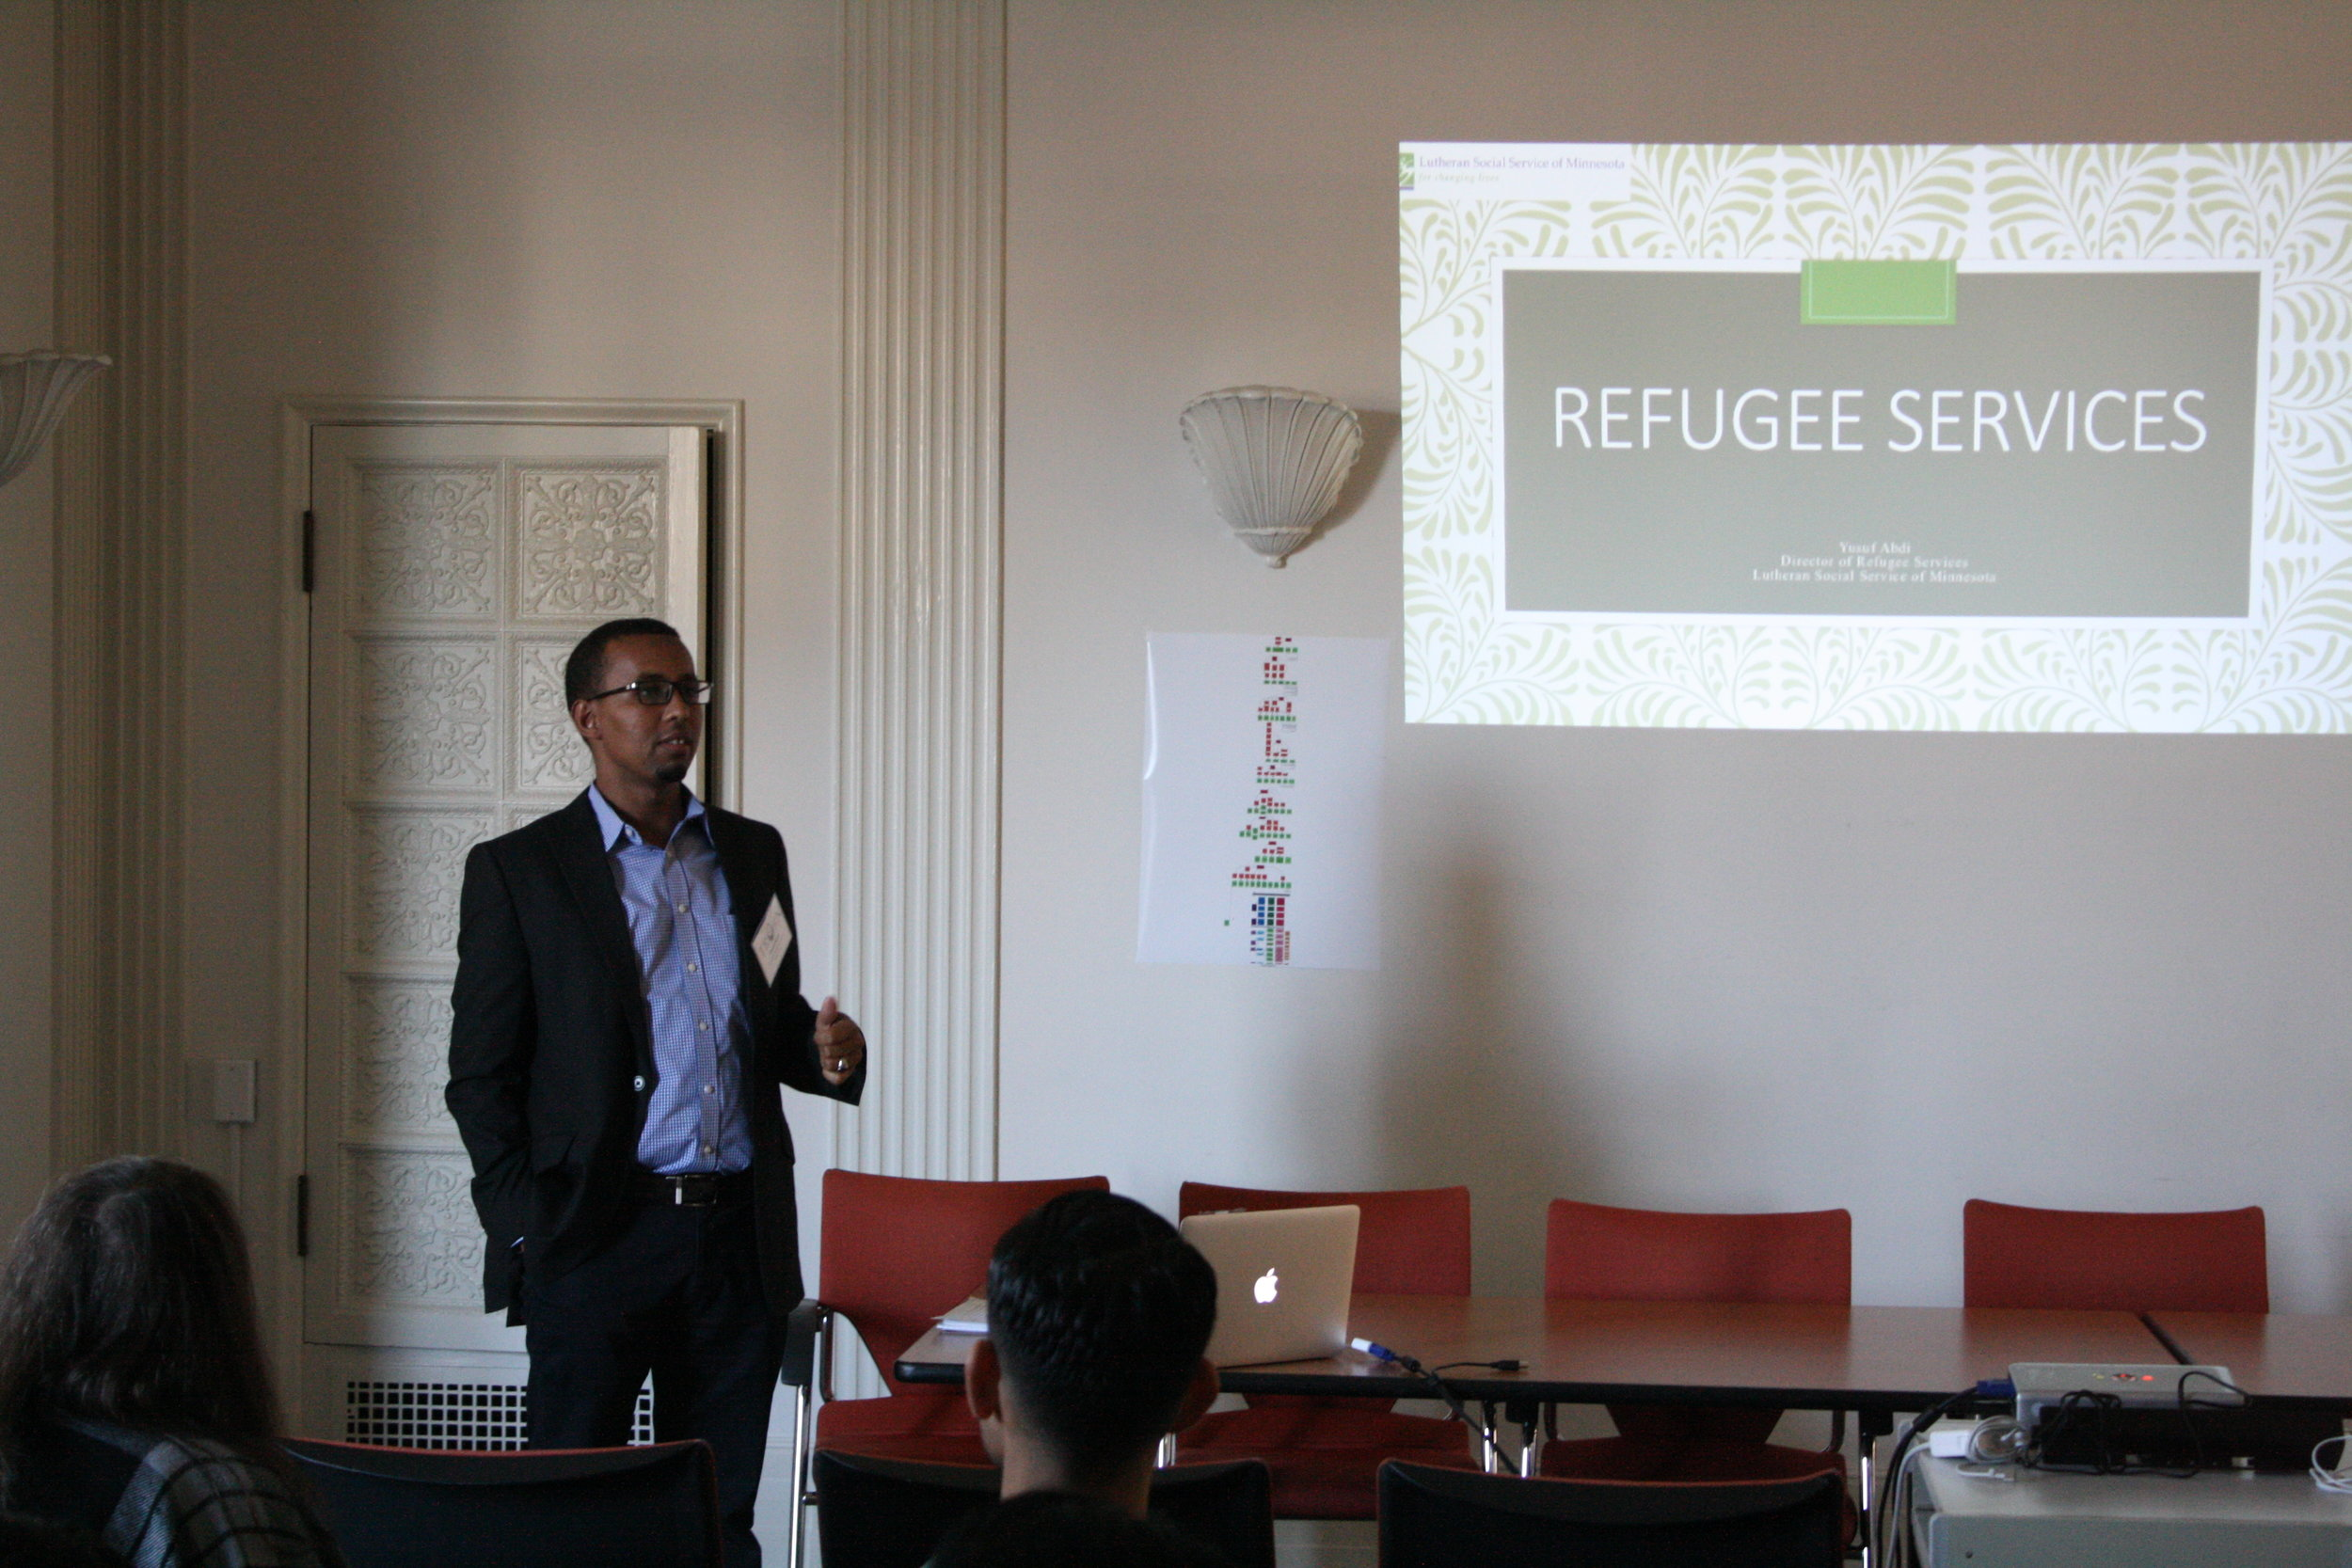 """Yusuf Abdi, Program Director of Refugee Services of Lutheran Social Services of Minnesota gives an inspiring speech on his journey to the US as a refugee from Somalia. He also shares a community education program he helped develop called """"My Neighbor is Muslim.""""   Refugee Resettlement, Community Empathy, and Integration"""